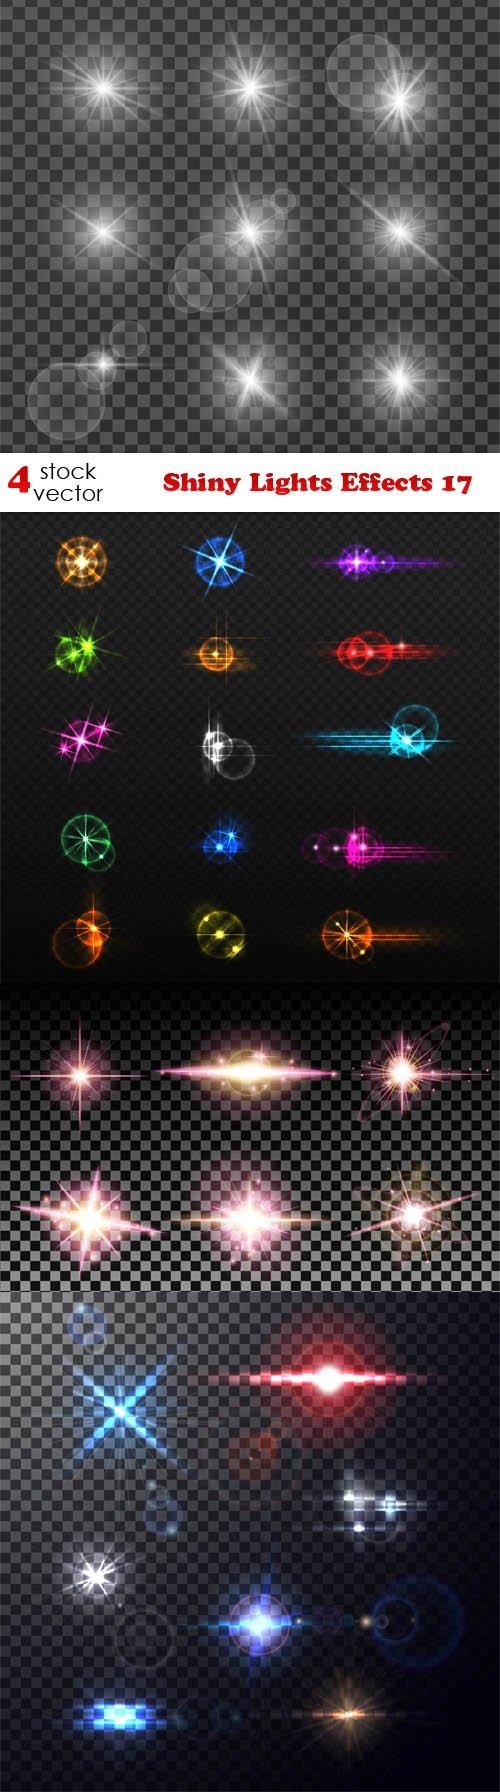 Vectors - Shiny Lights Effects 17